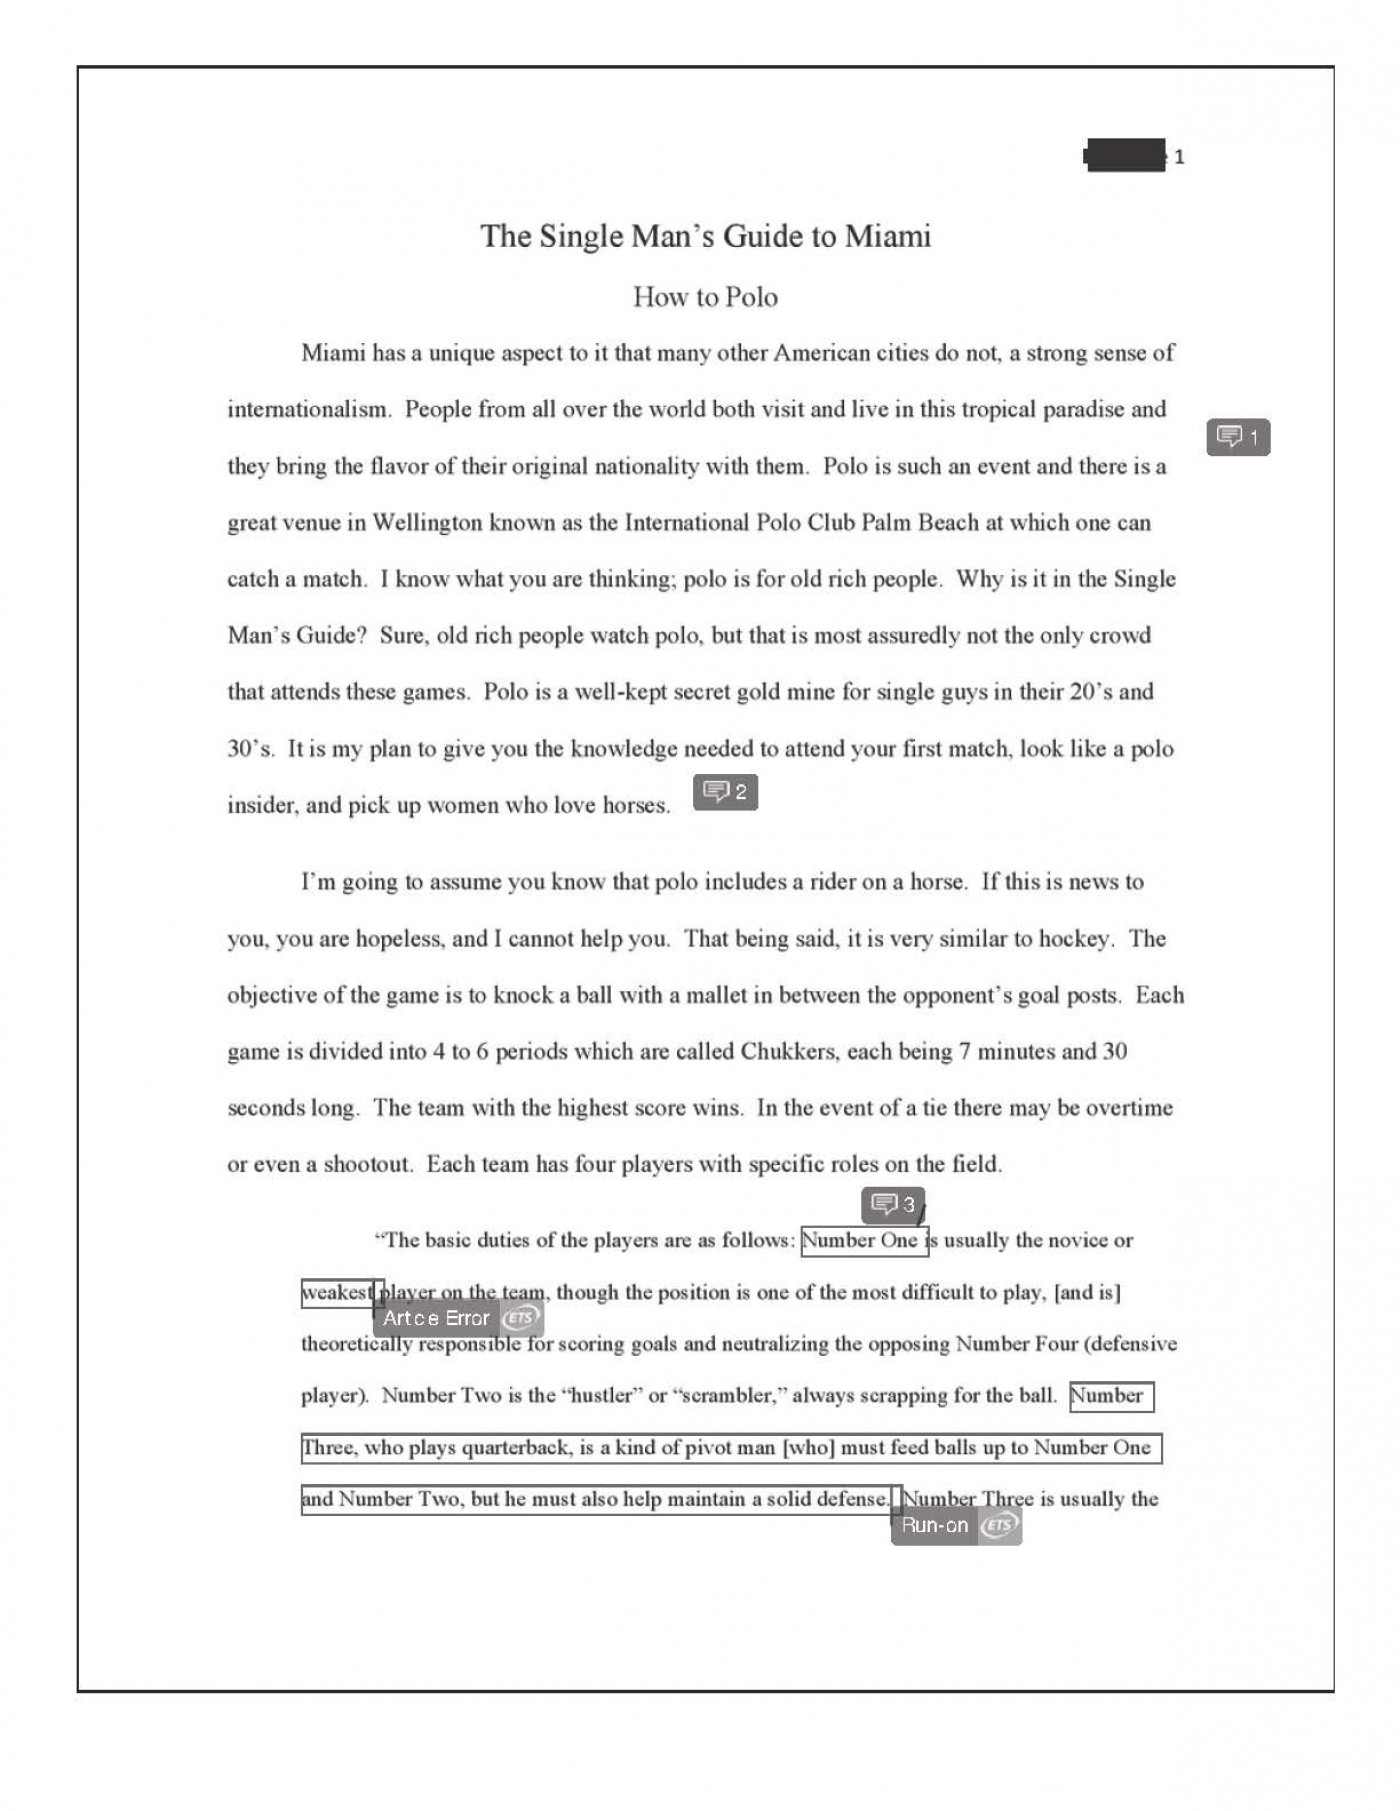 007 Informative Essay Kinds Of Writing Types Essays The Center In Hindi Final How To Polo Redacted P Pdf Task Slideshare Ppt Withs Wikipedia Dreaded Graphic Organizer Prompts Middle School 3rd Grade 1400